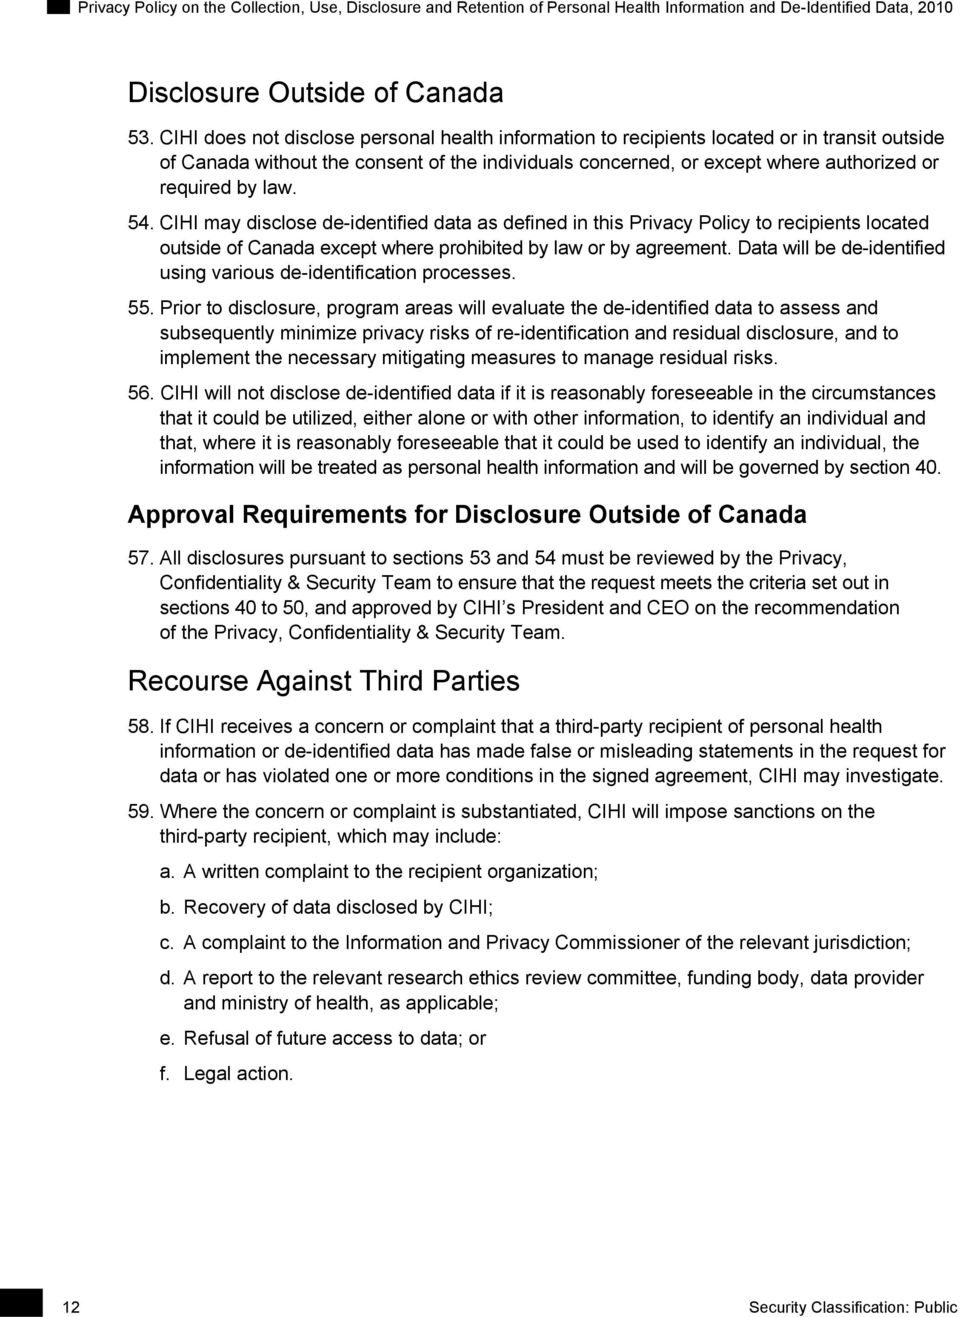 law. 54. CIHI may disclose de-identified data as defined in this Privacy Policy to recipients located outside of Canada except where prohibited by law or by agreement.